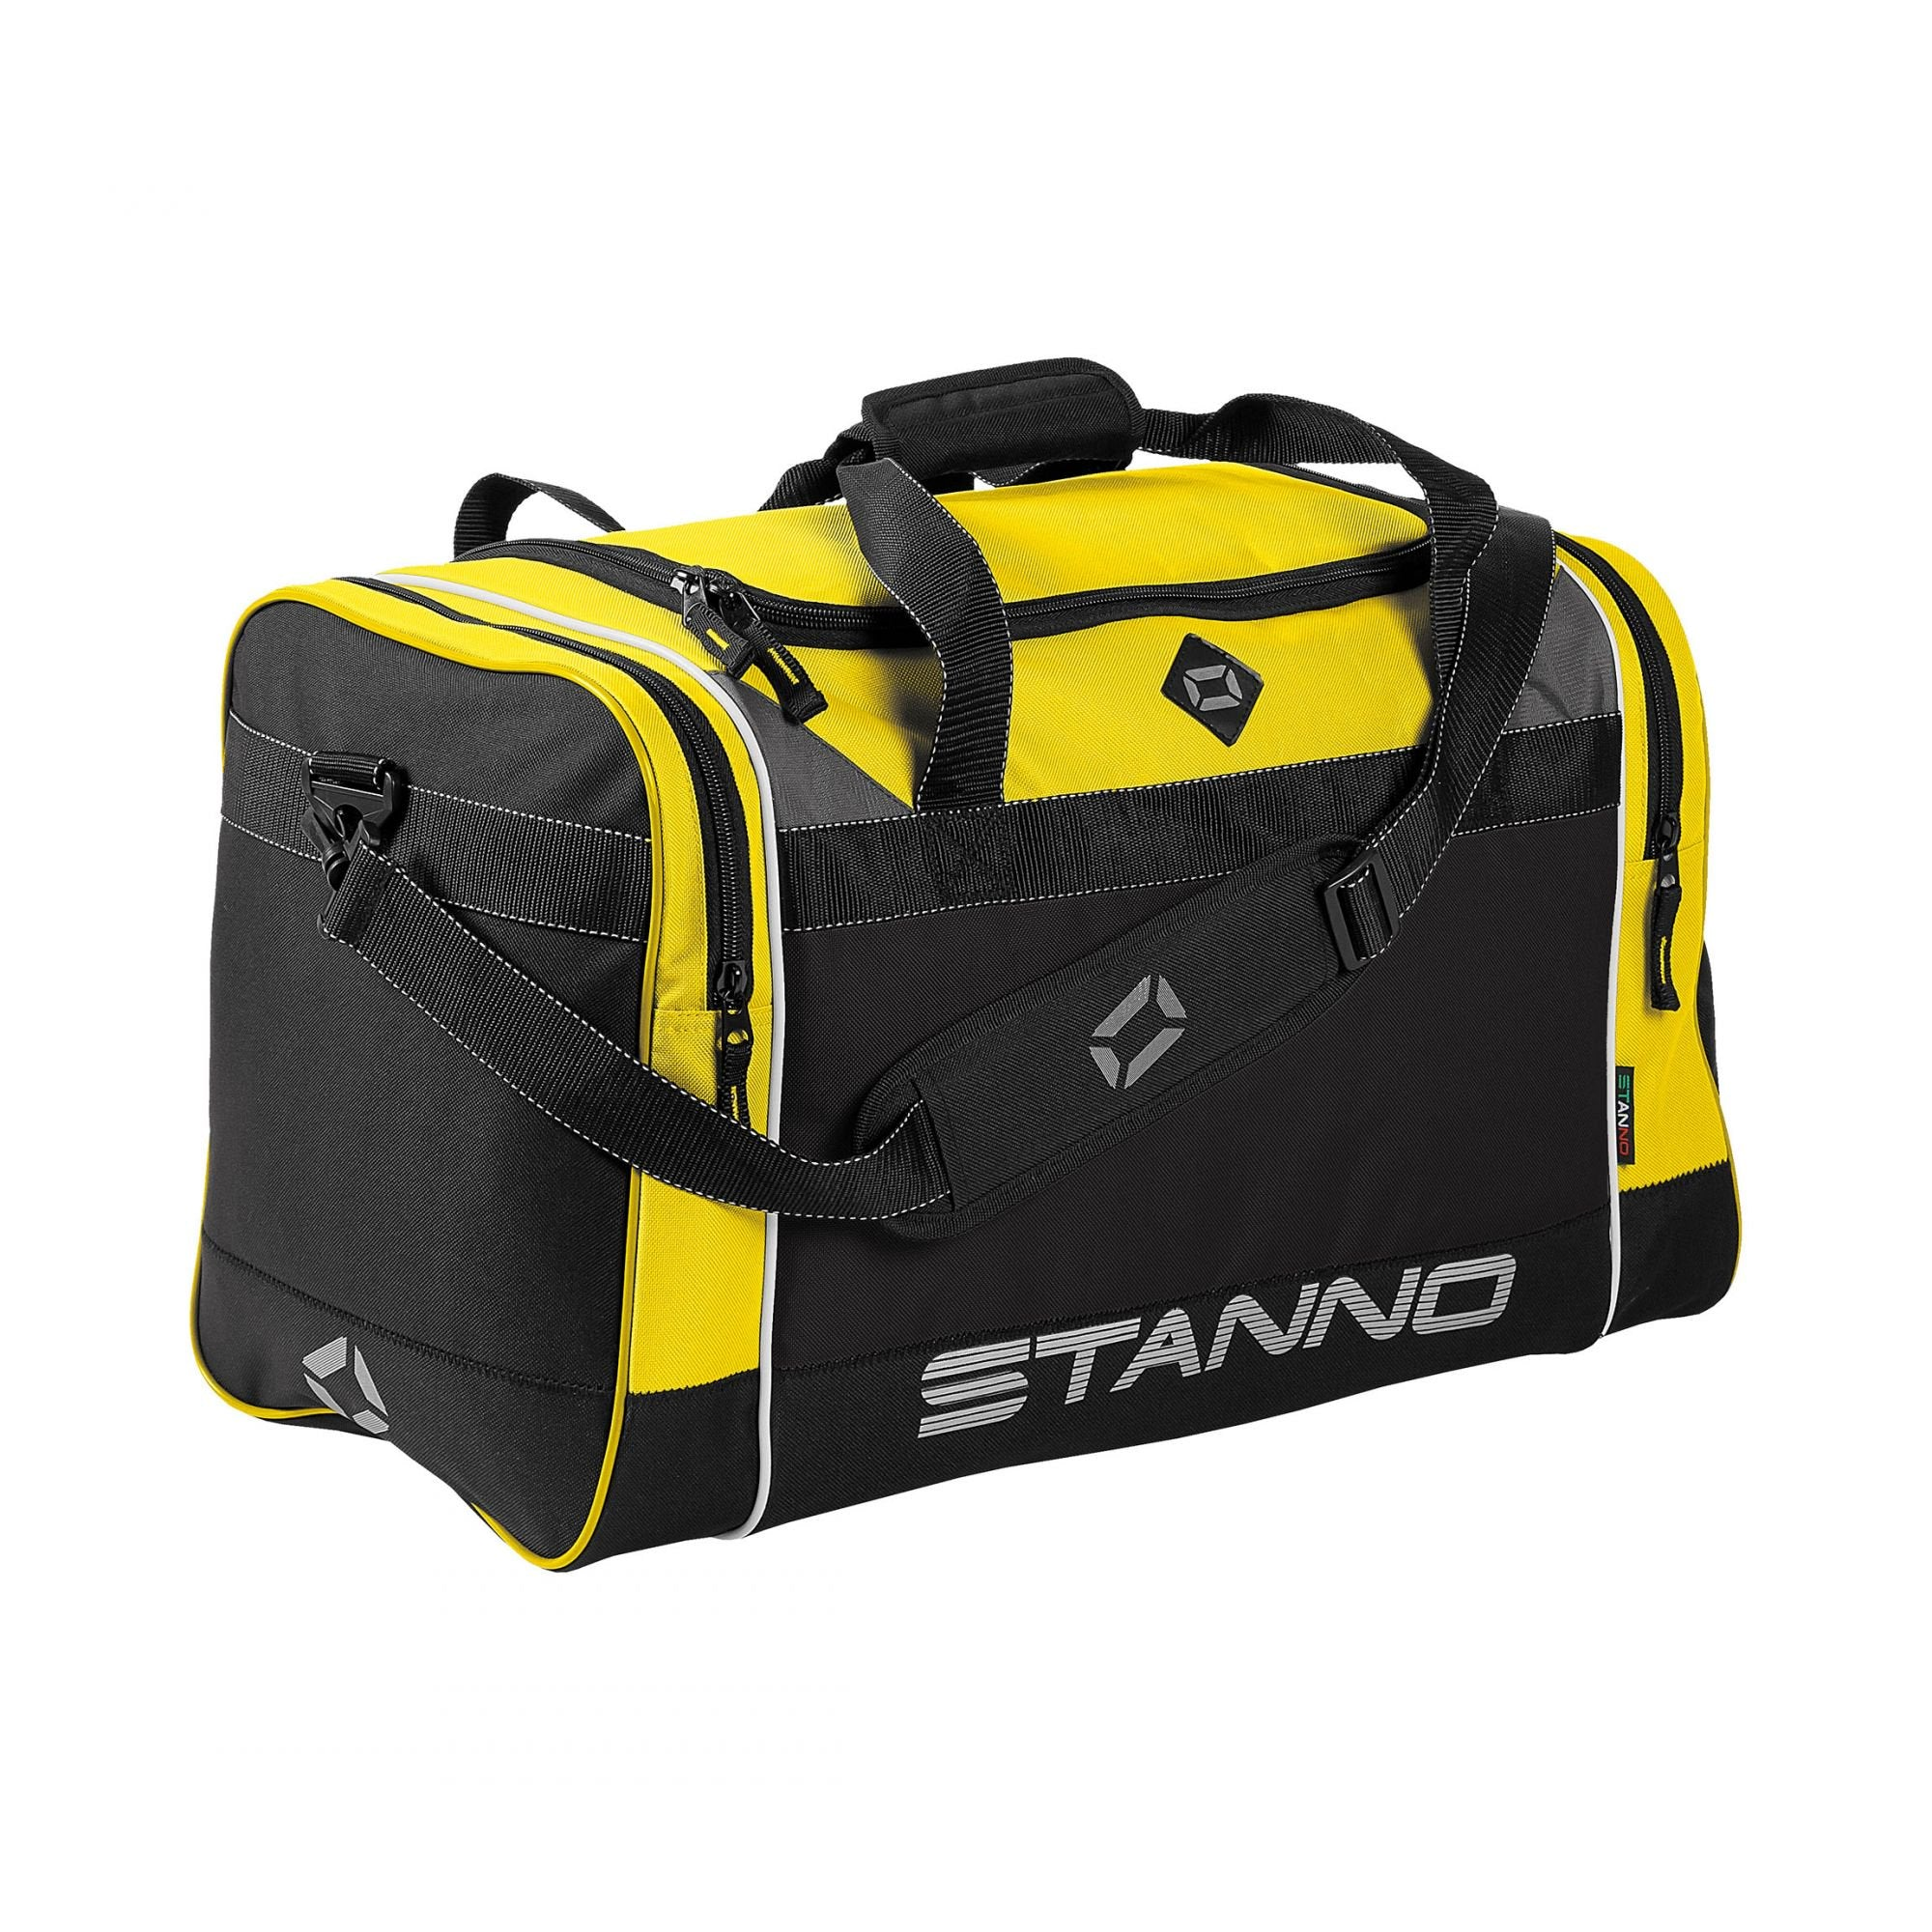 Stanno Sevilla Excellence sports bag in yellow with contrast black side panelswith shoulder strap. Large text logo at the bottom of the side panel.